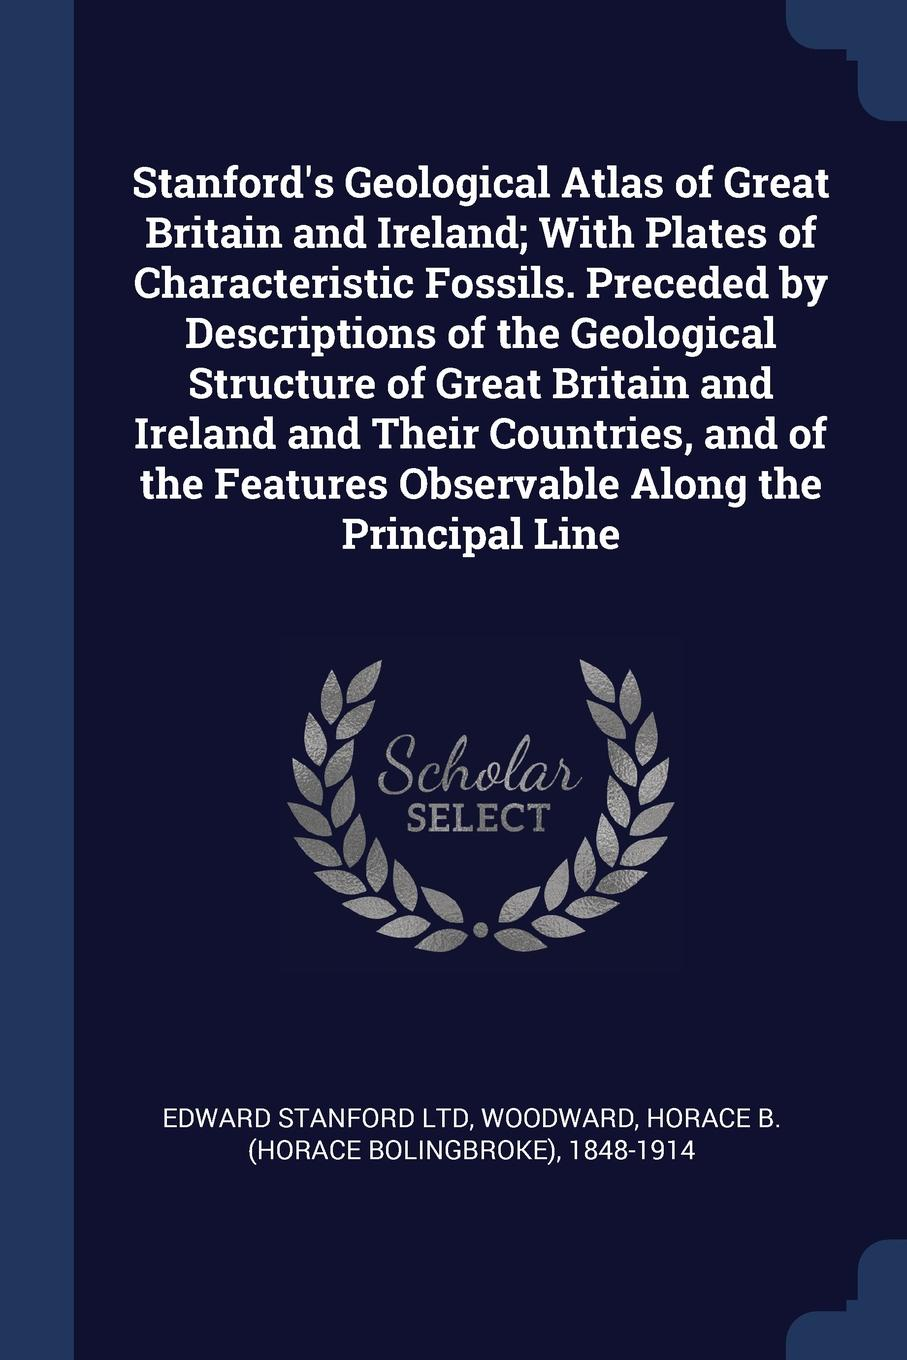 Edward Stanford Ltd, Horace B. 1848-1914 Woodward Stanford's Geological Atlas of Great Britain and Ireland; With Plates of Characteristic Fossils. Preceded by Descriptions of the Geological Structure of Great Britain and Ireland and Their Countries, and of the Features Observable Along the Princi... woodcock nigel h geological history of britain and ireland